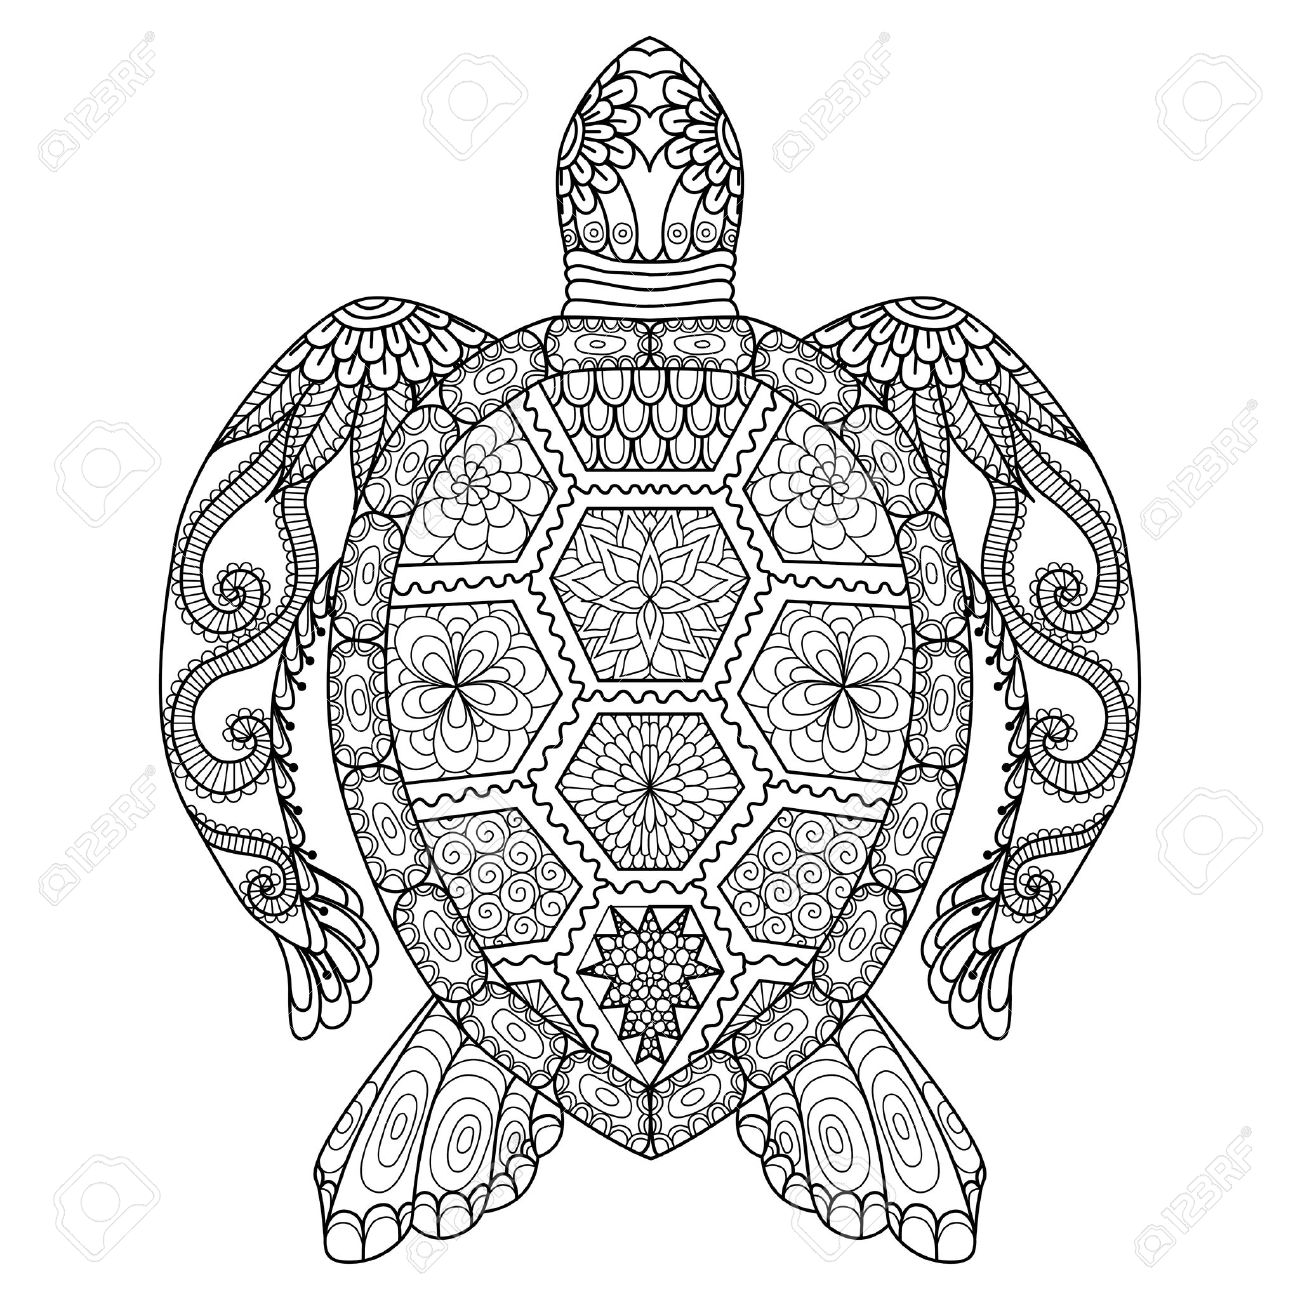 1300x1300 Drawing Zentangle Turtle For Coloring Page, Shirt Design Effect